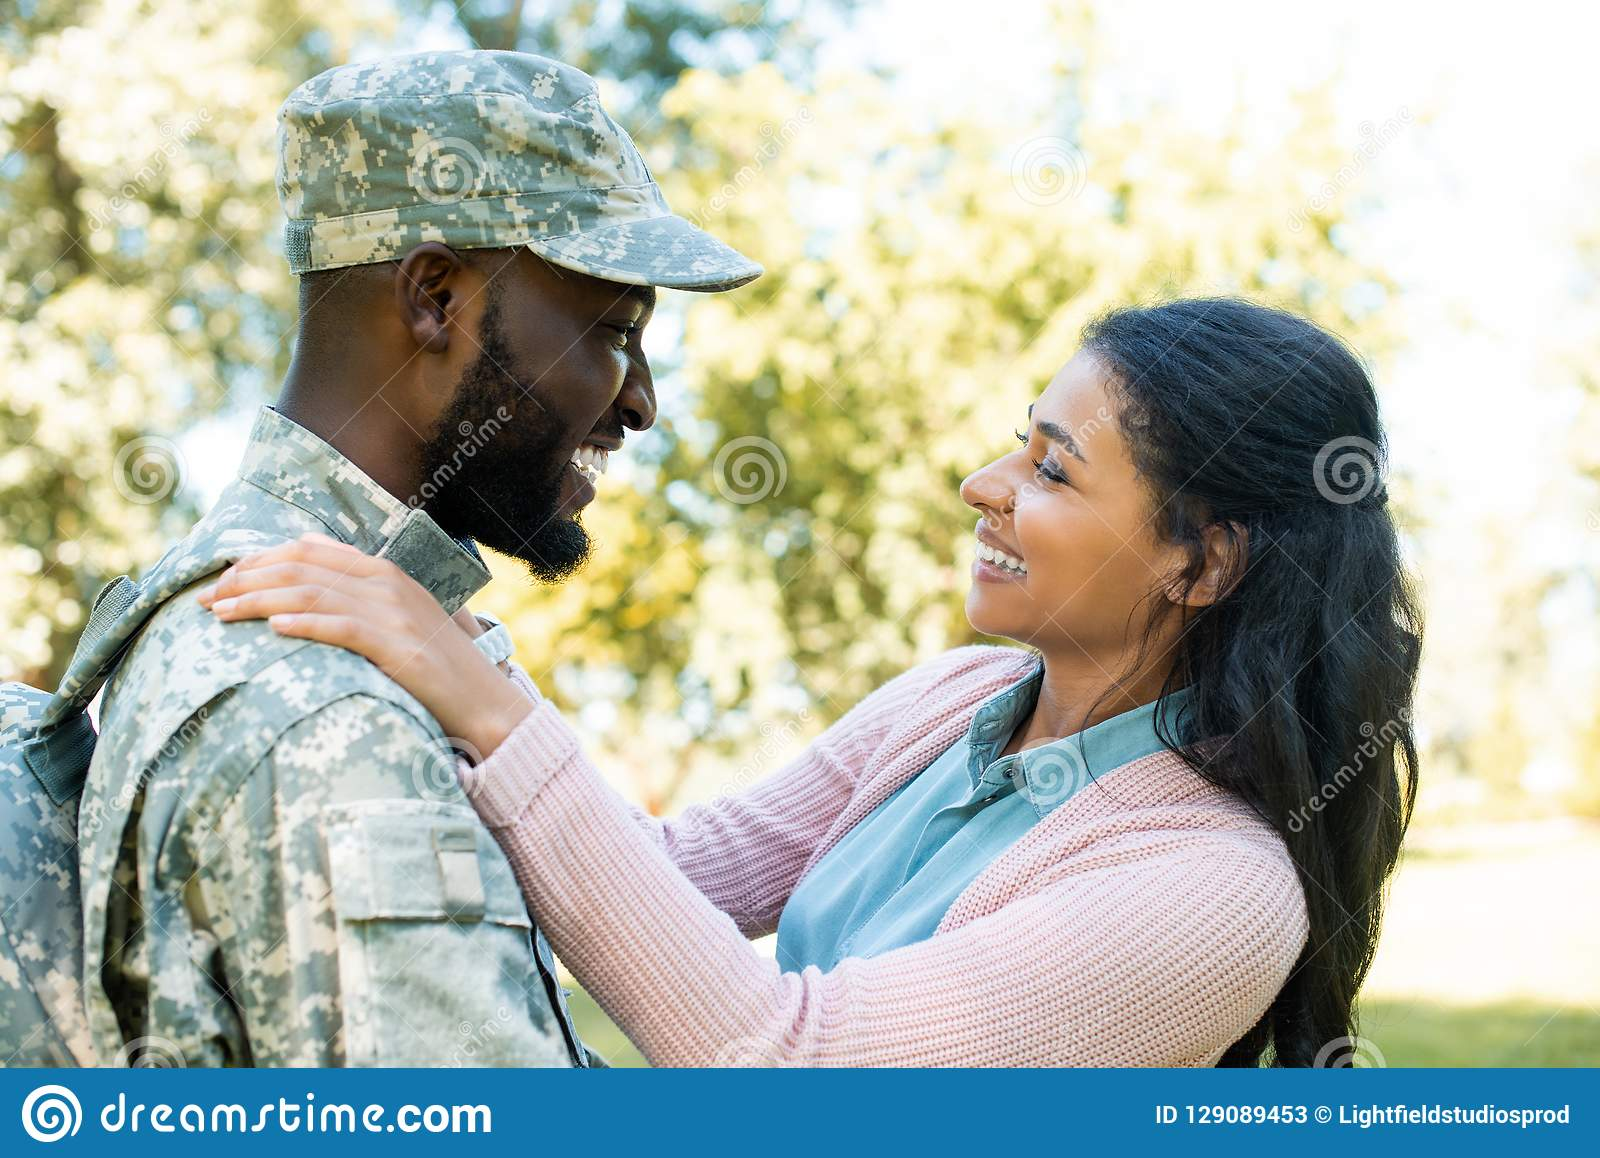 side view of smiling african american soldier in military uniform hugging girlfriend